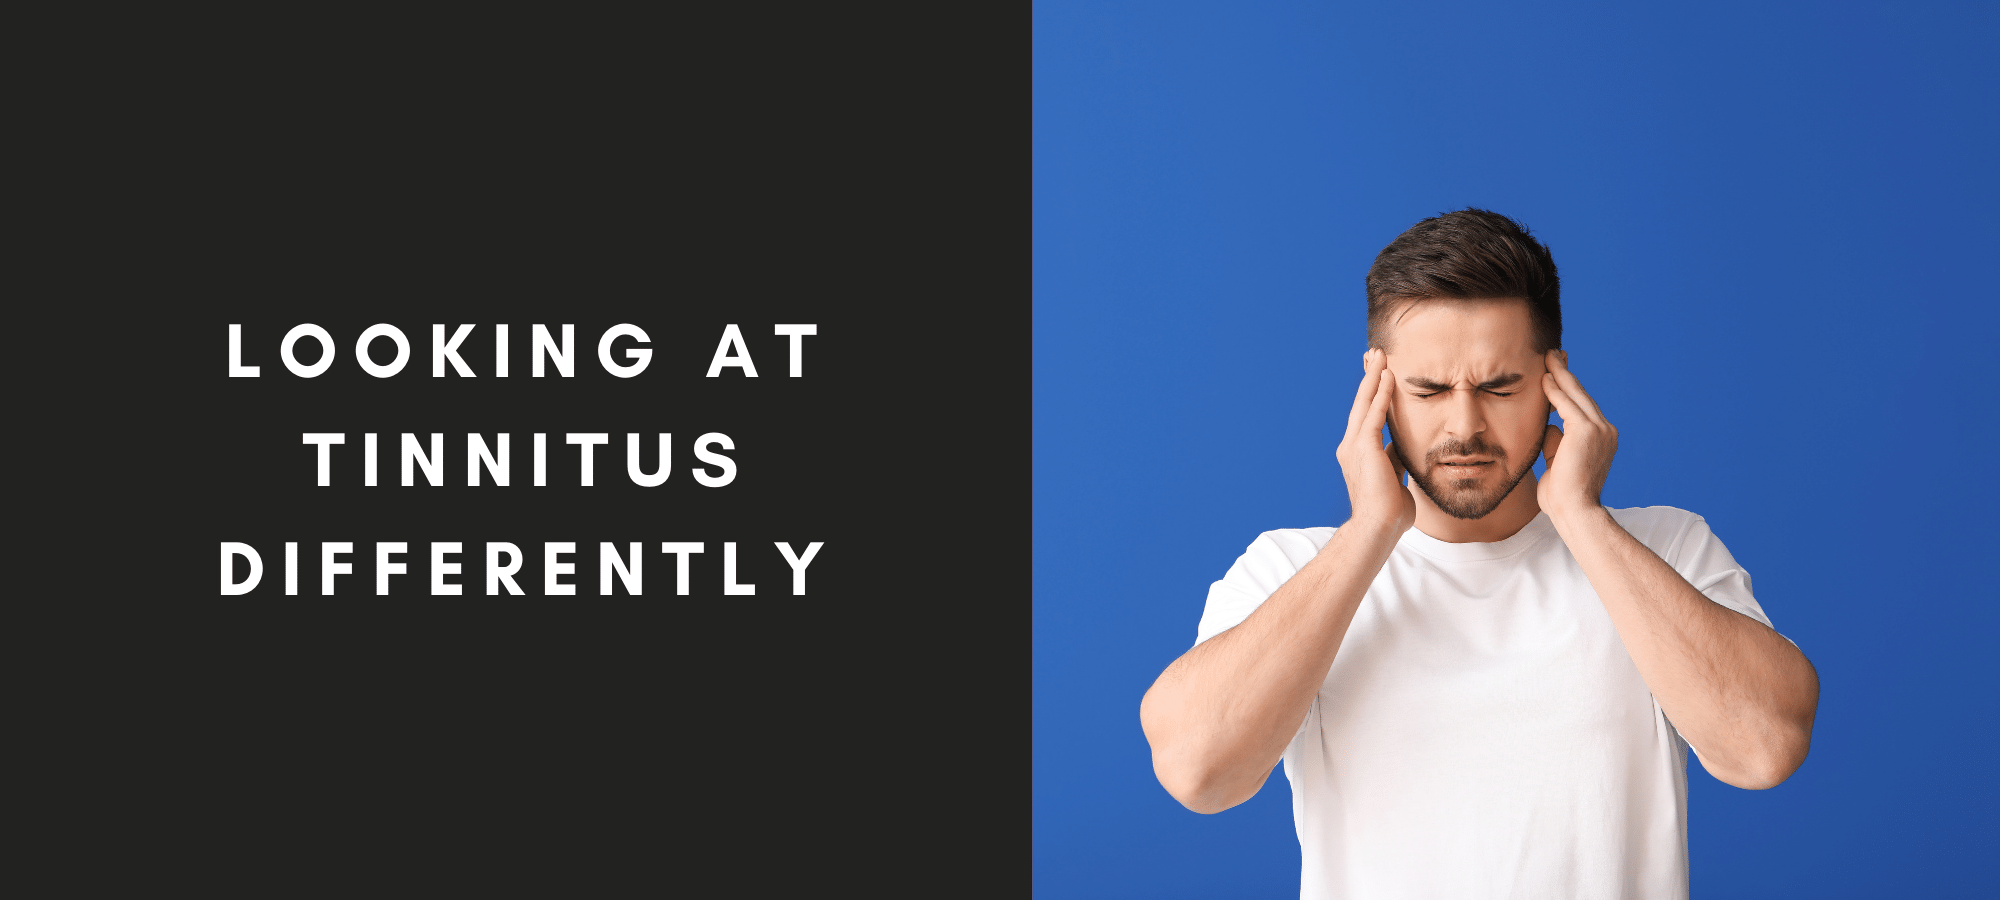 Looking at Tinnitus Differently